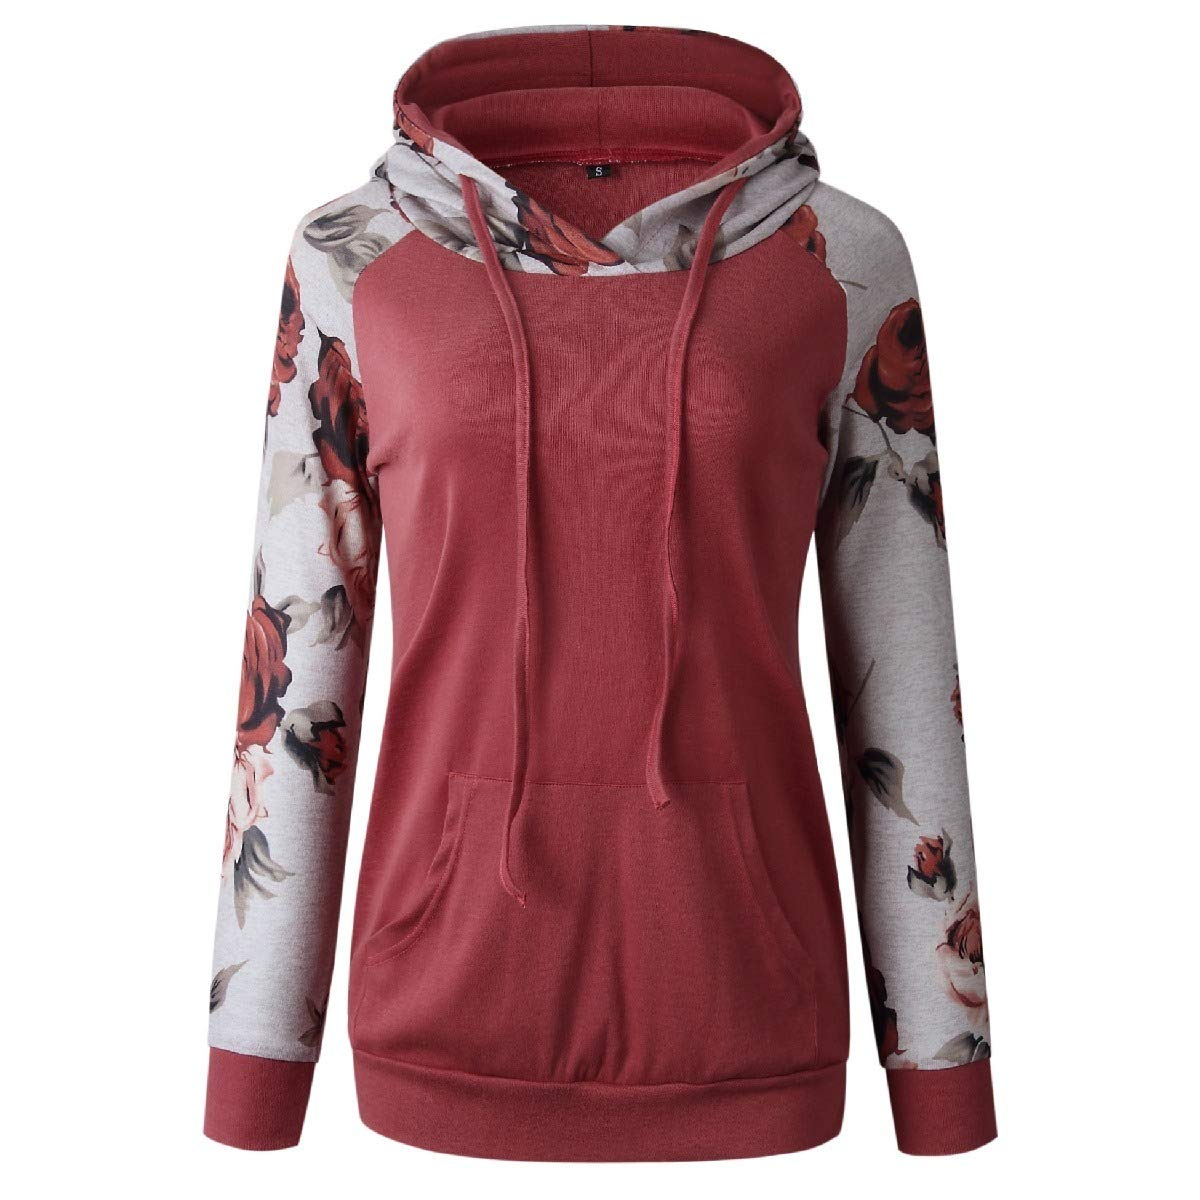 Mfasica Women Printed Loose Casual Hooded Pocket Sweatshirt Outwear